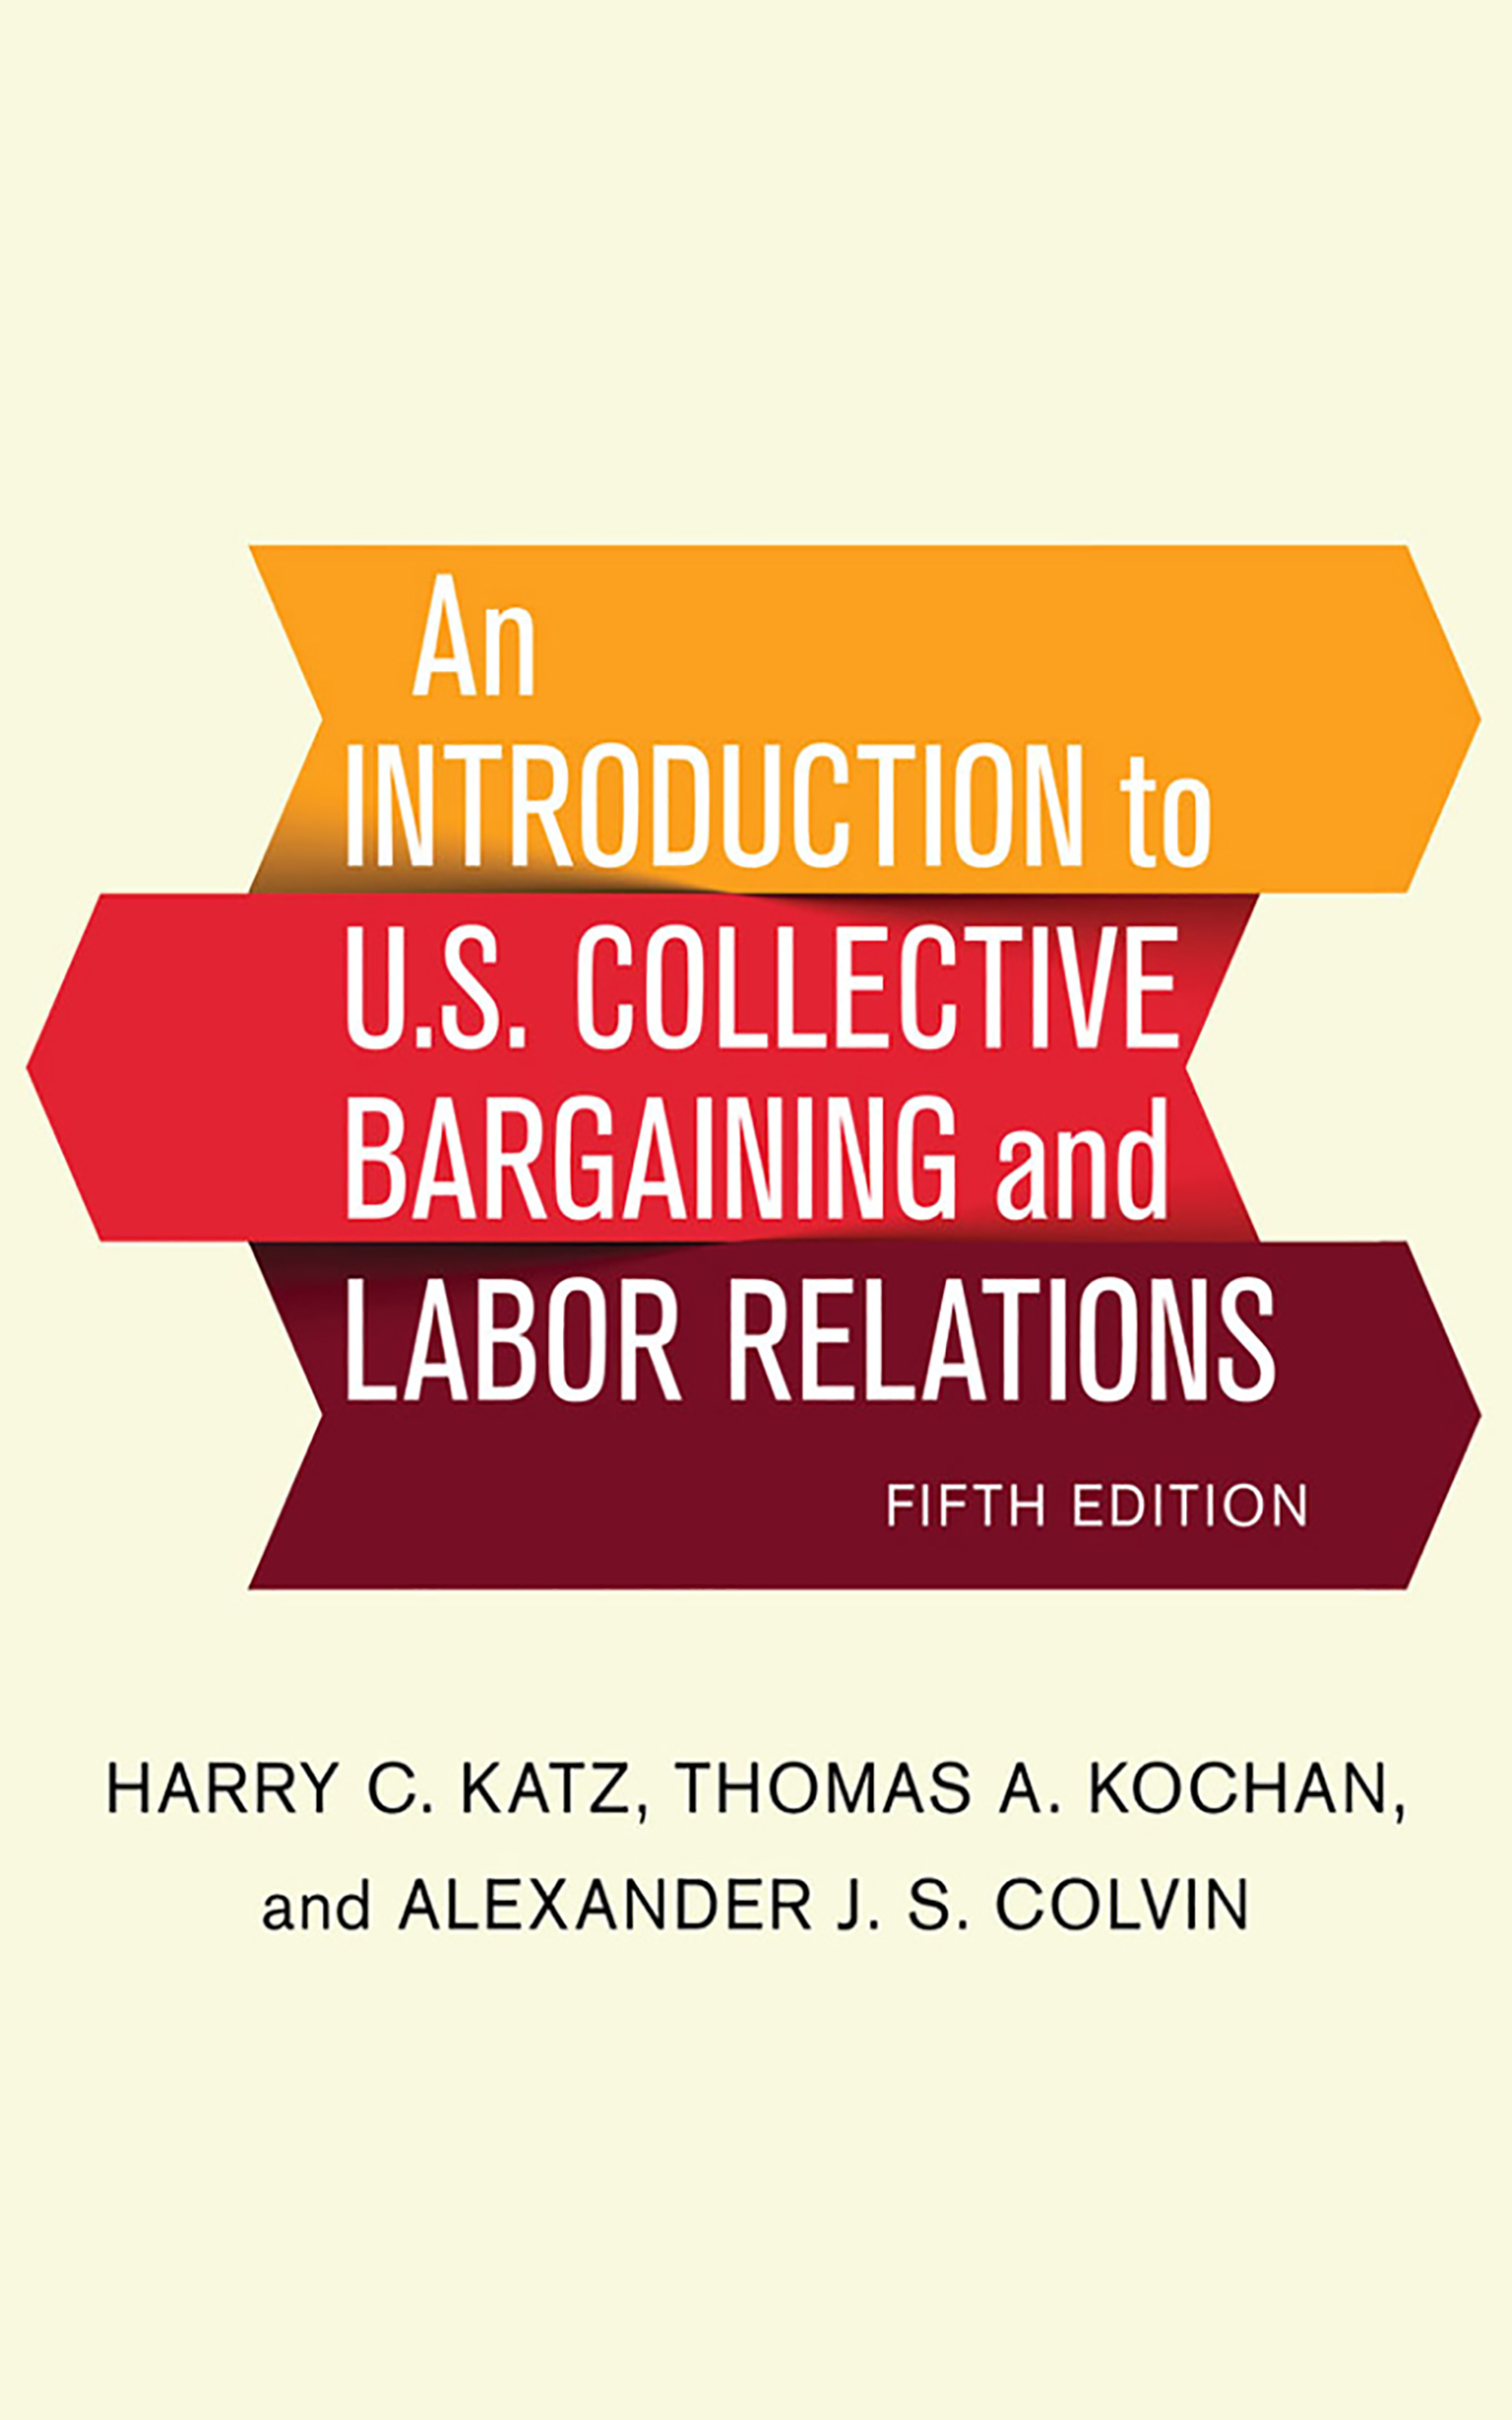 Download Ebook An Introduction to U.S. Collective Bargaining and Labor Relations (5th ed.) by Harry C. Katz Pdf